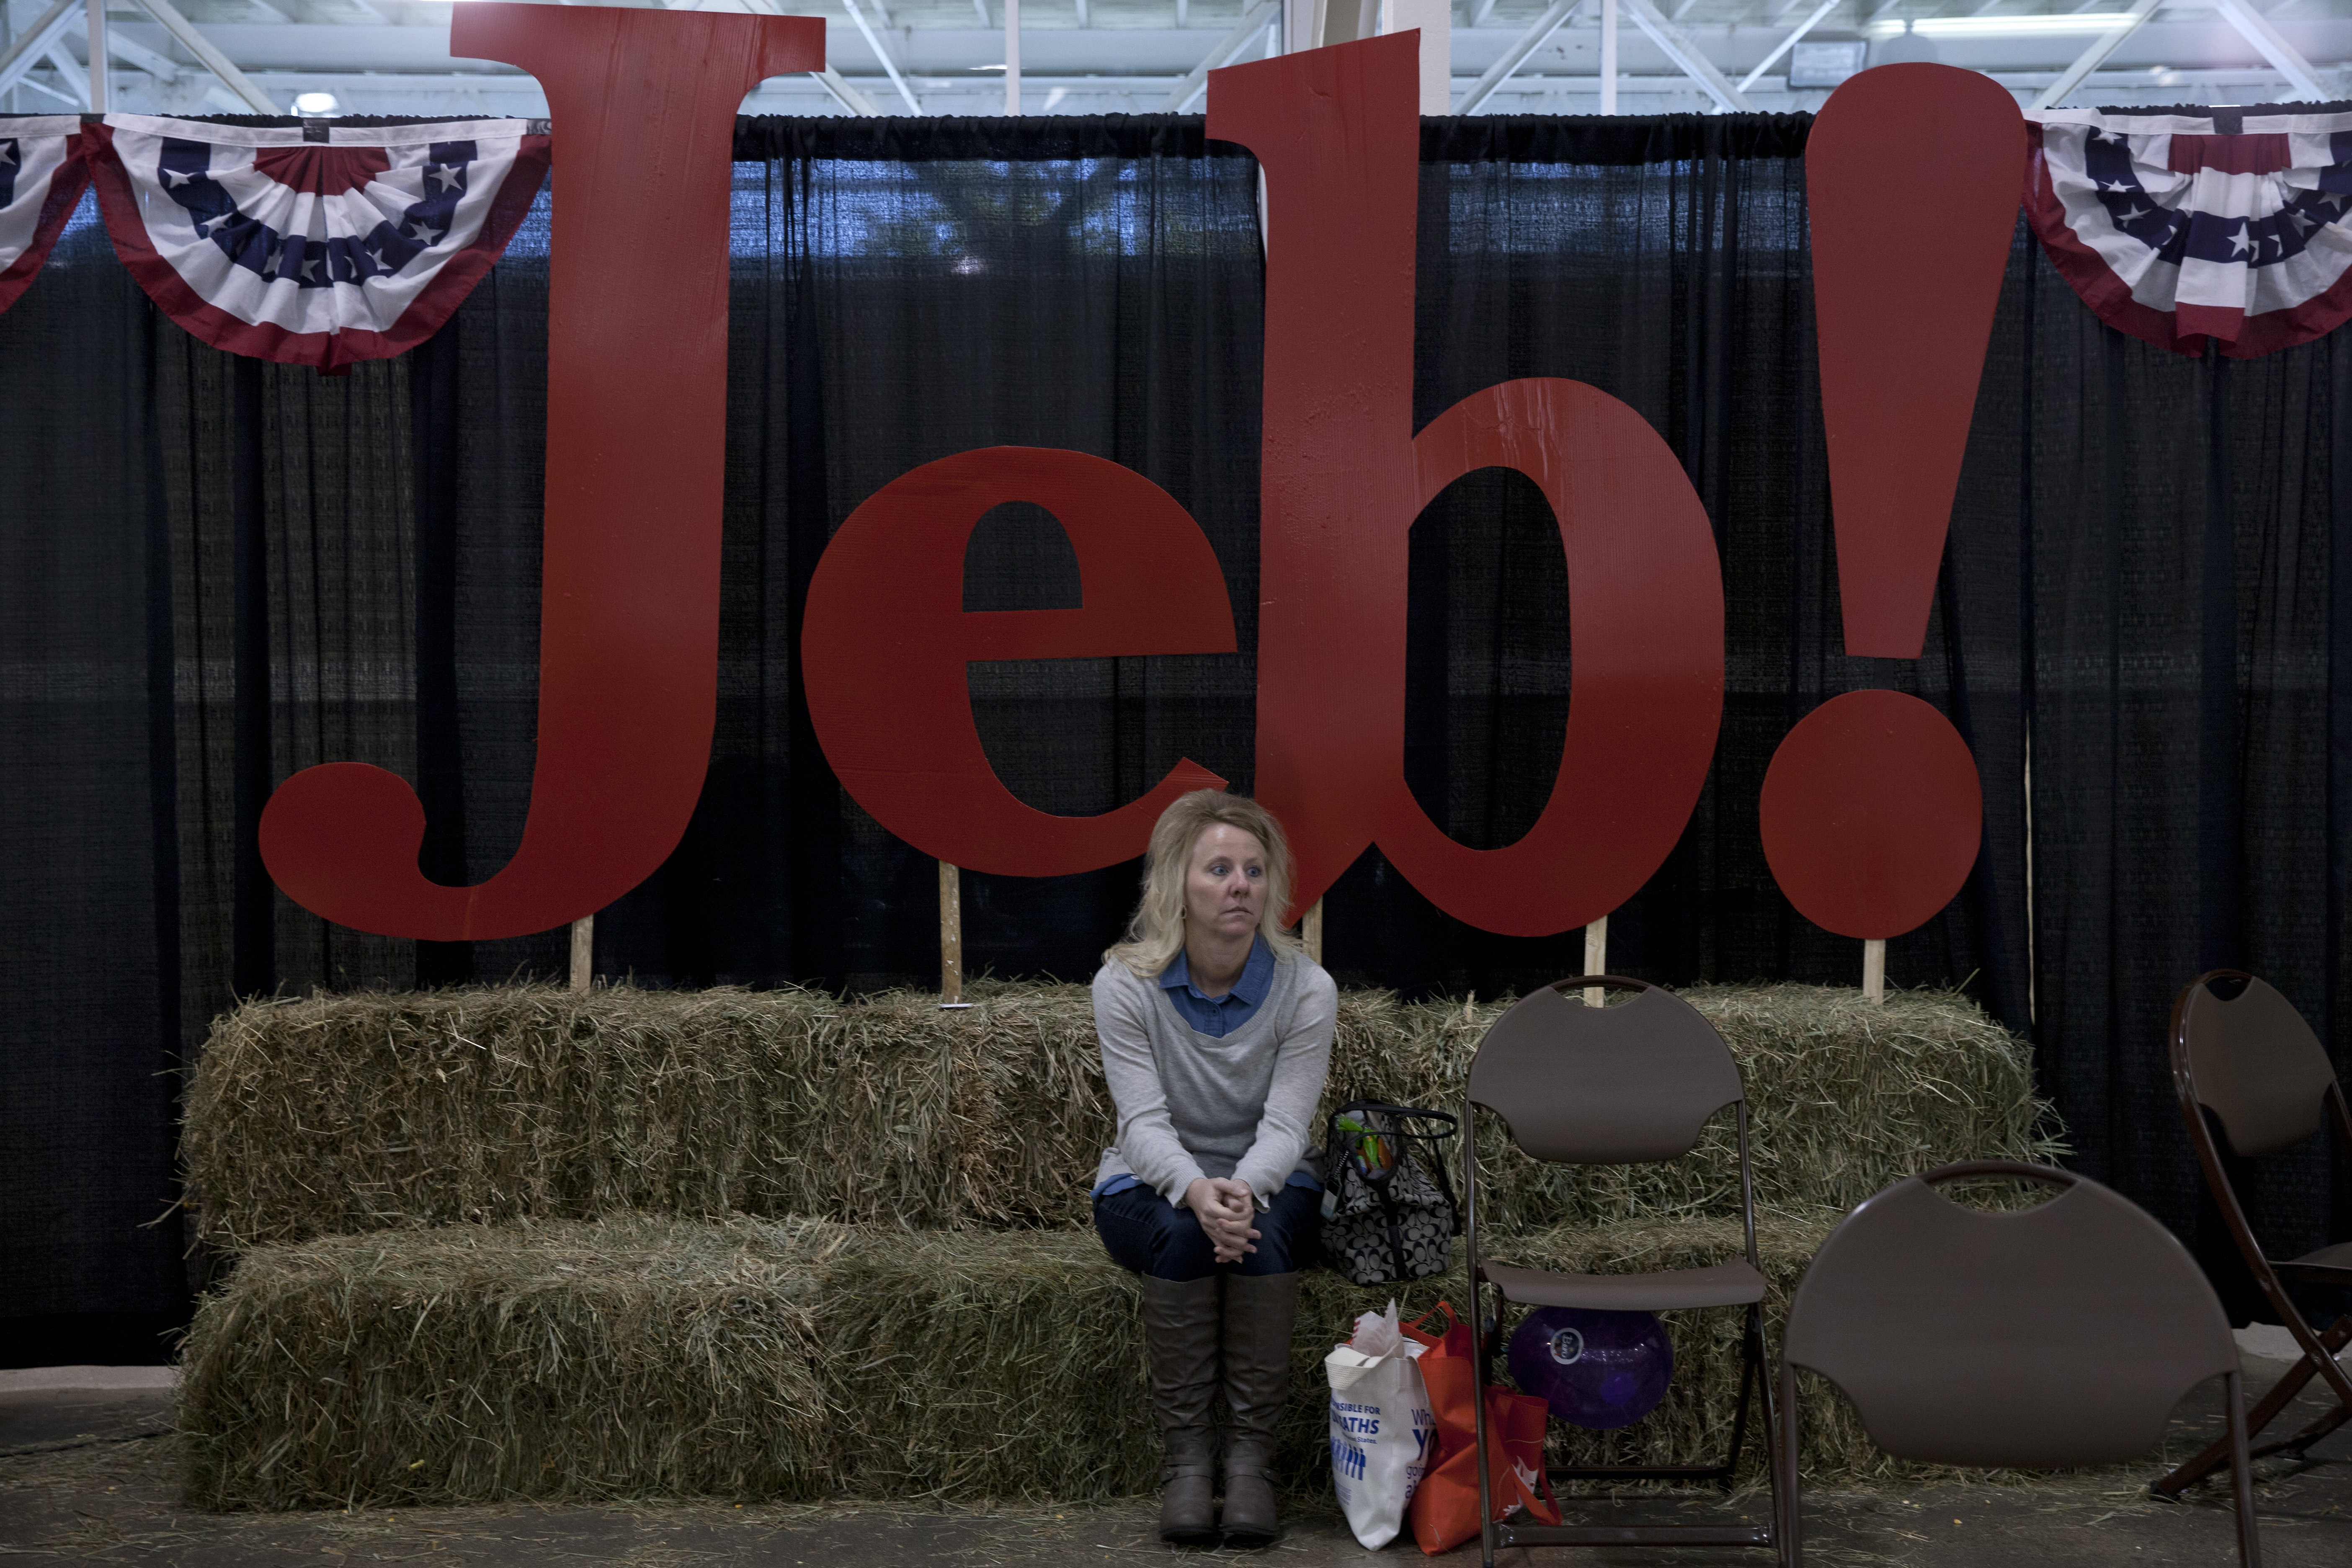 "A Jeb display at the ""Growth and Opportunity Party"" In Des Moines Iowa. 10 GOP presidential hopefuls were in Des Moines Saturday for the ""Growth and Opportunity Party"". Ted Cruz, Rand Paul, Chris Christie, Bobby Jindal, Marco Rubio, Mike Huckabee, Lindsey Graham, Jeb Bush, Rick Santorum and Carly Fiorina all received 15 minutes to address the crowd."